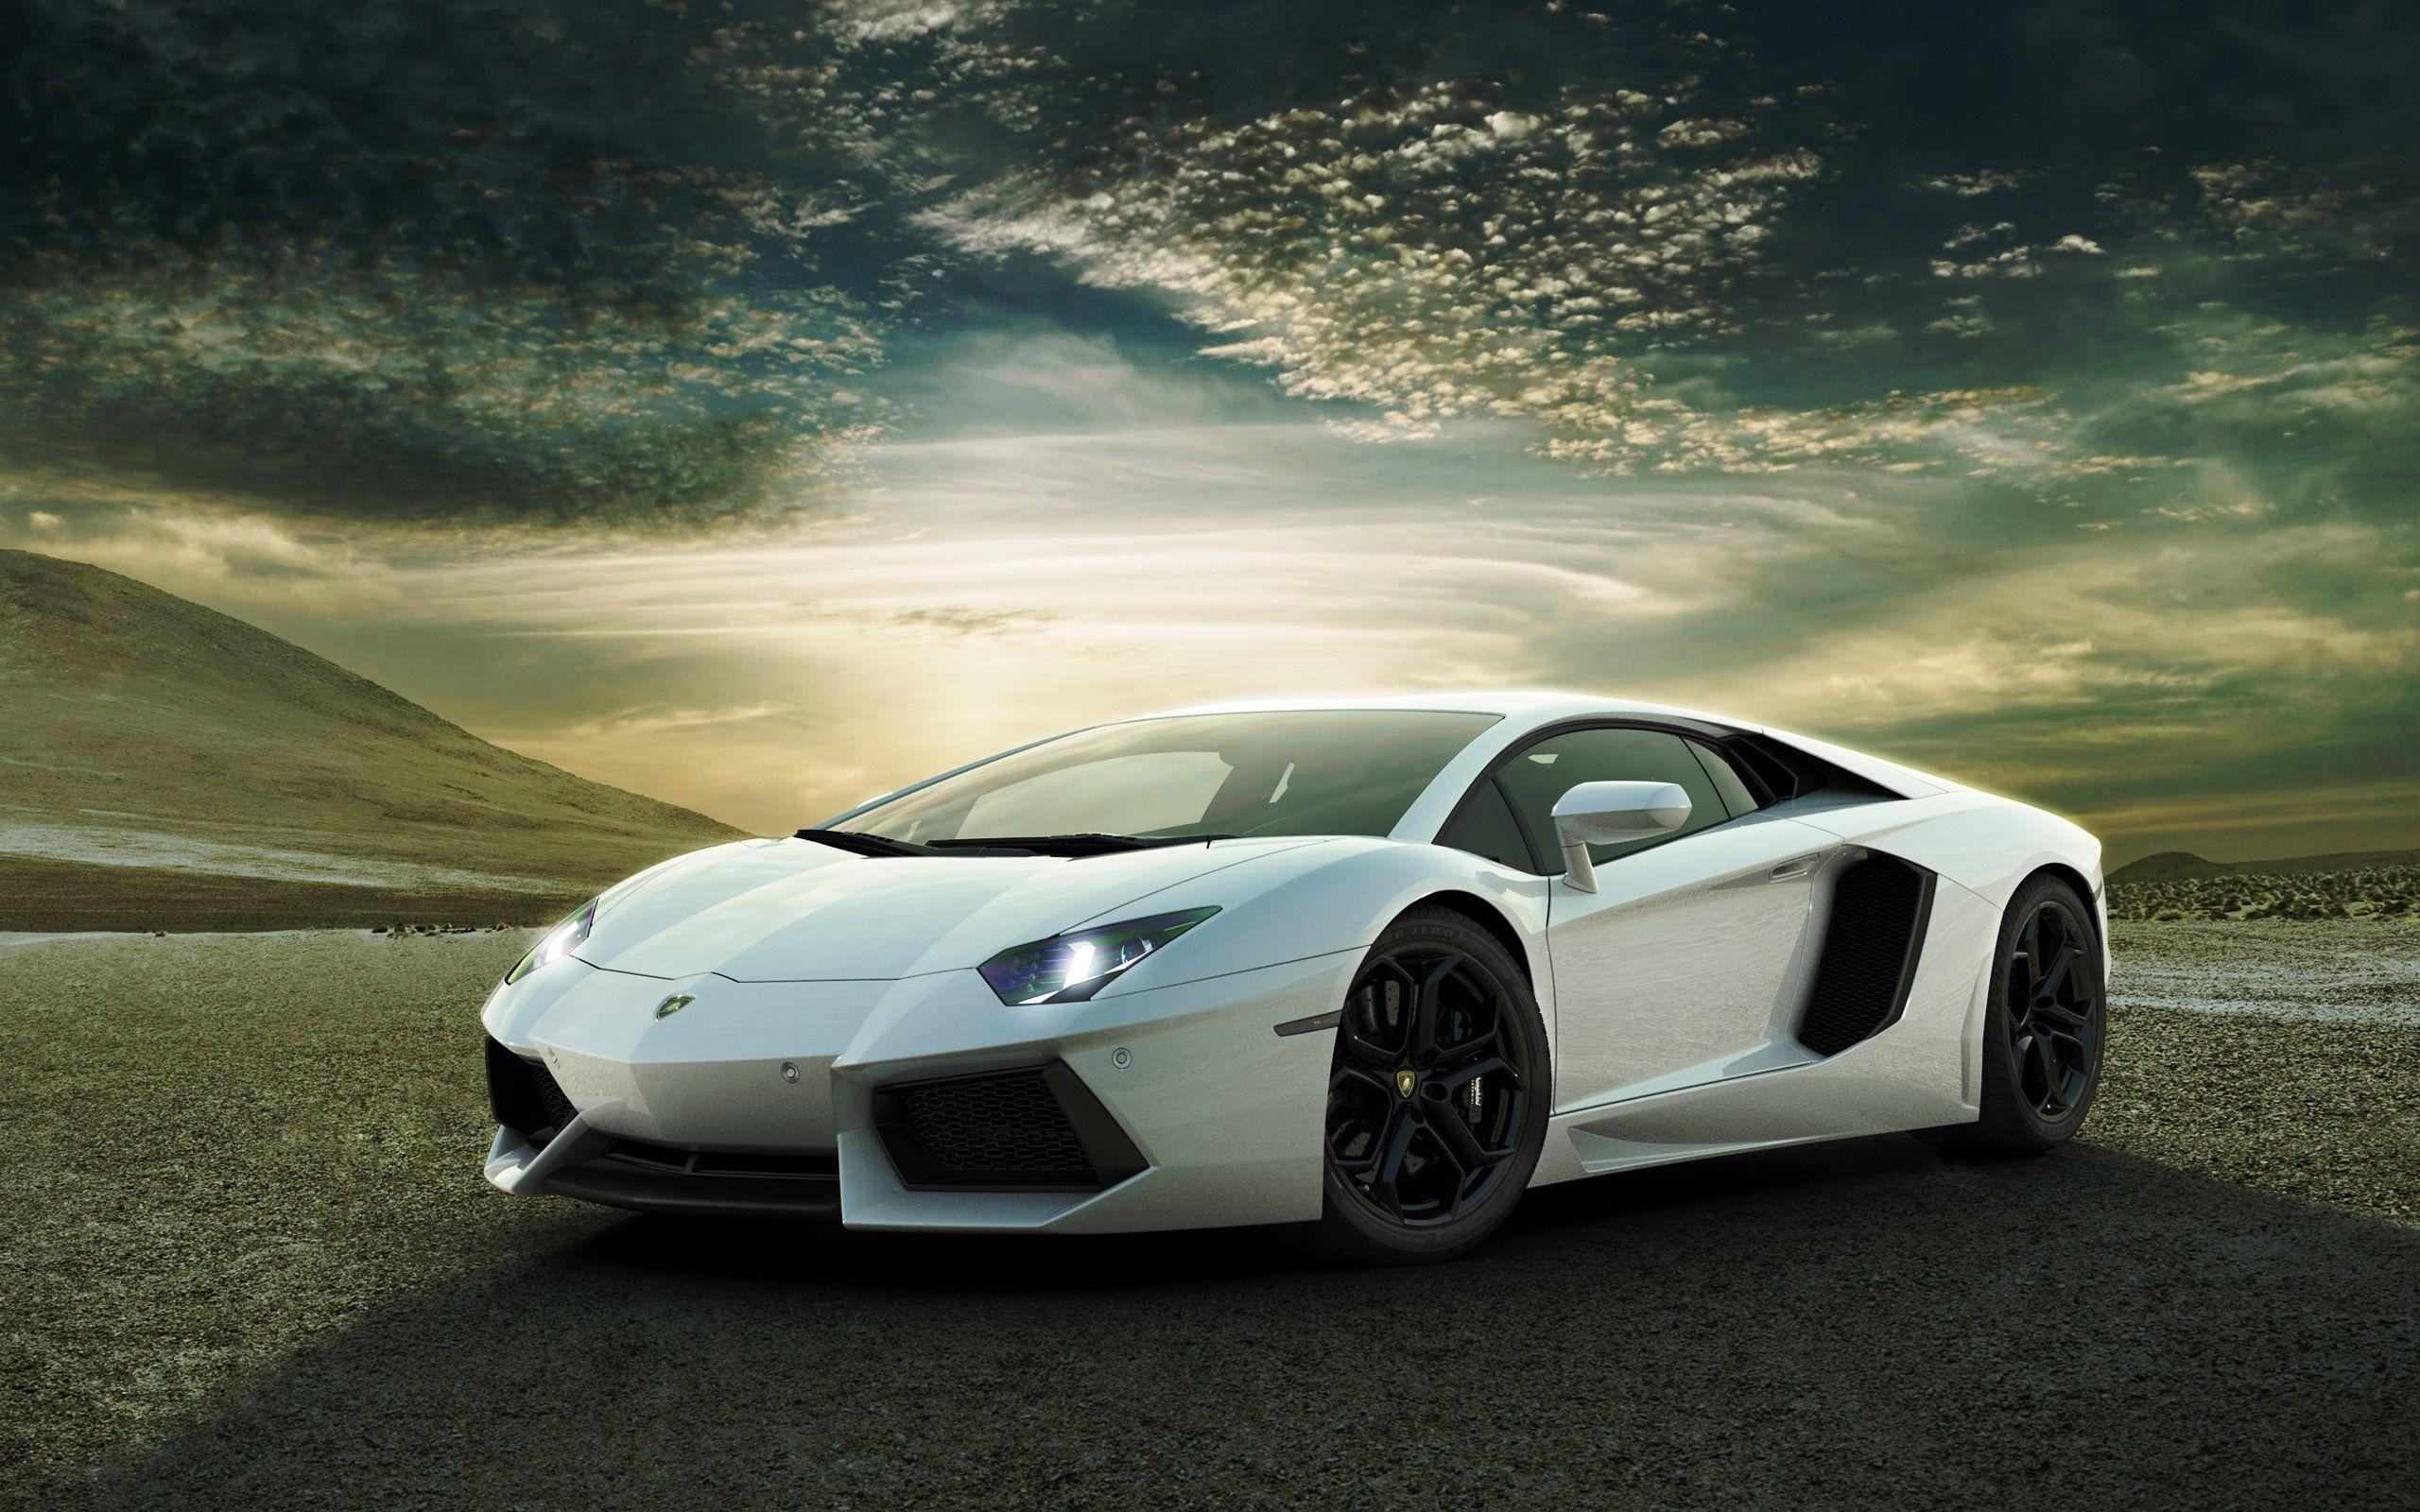 Hd wallpaper lamborghini - Lamborghini Aventador Hd Wallpapers Free Download Hd Free